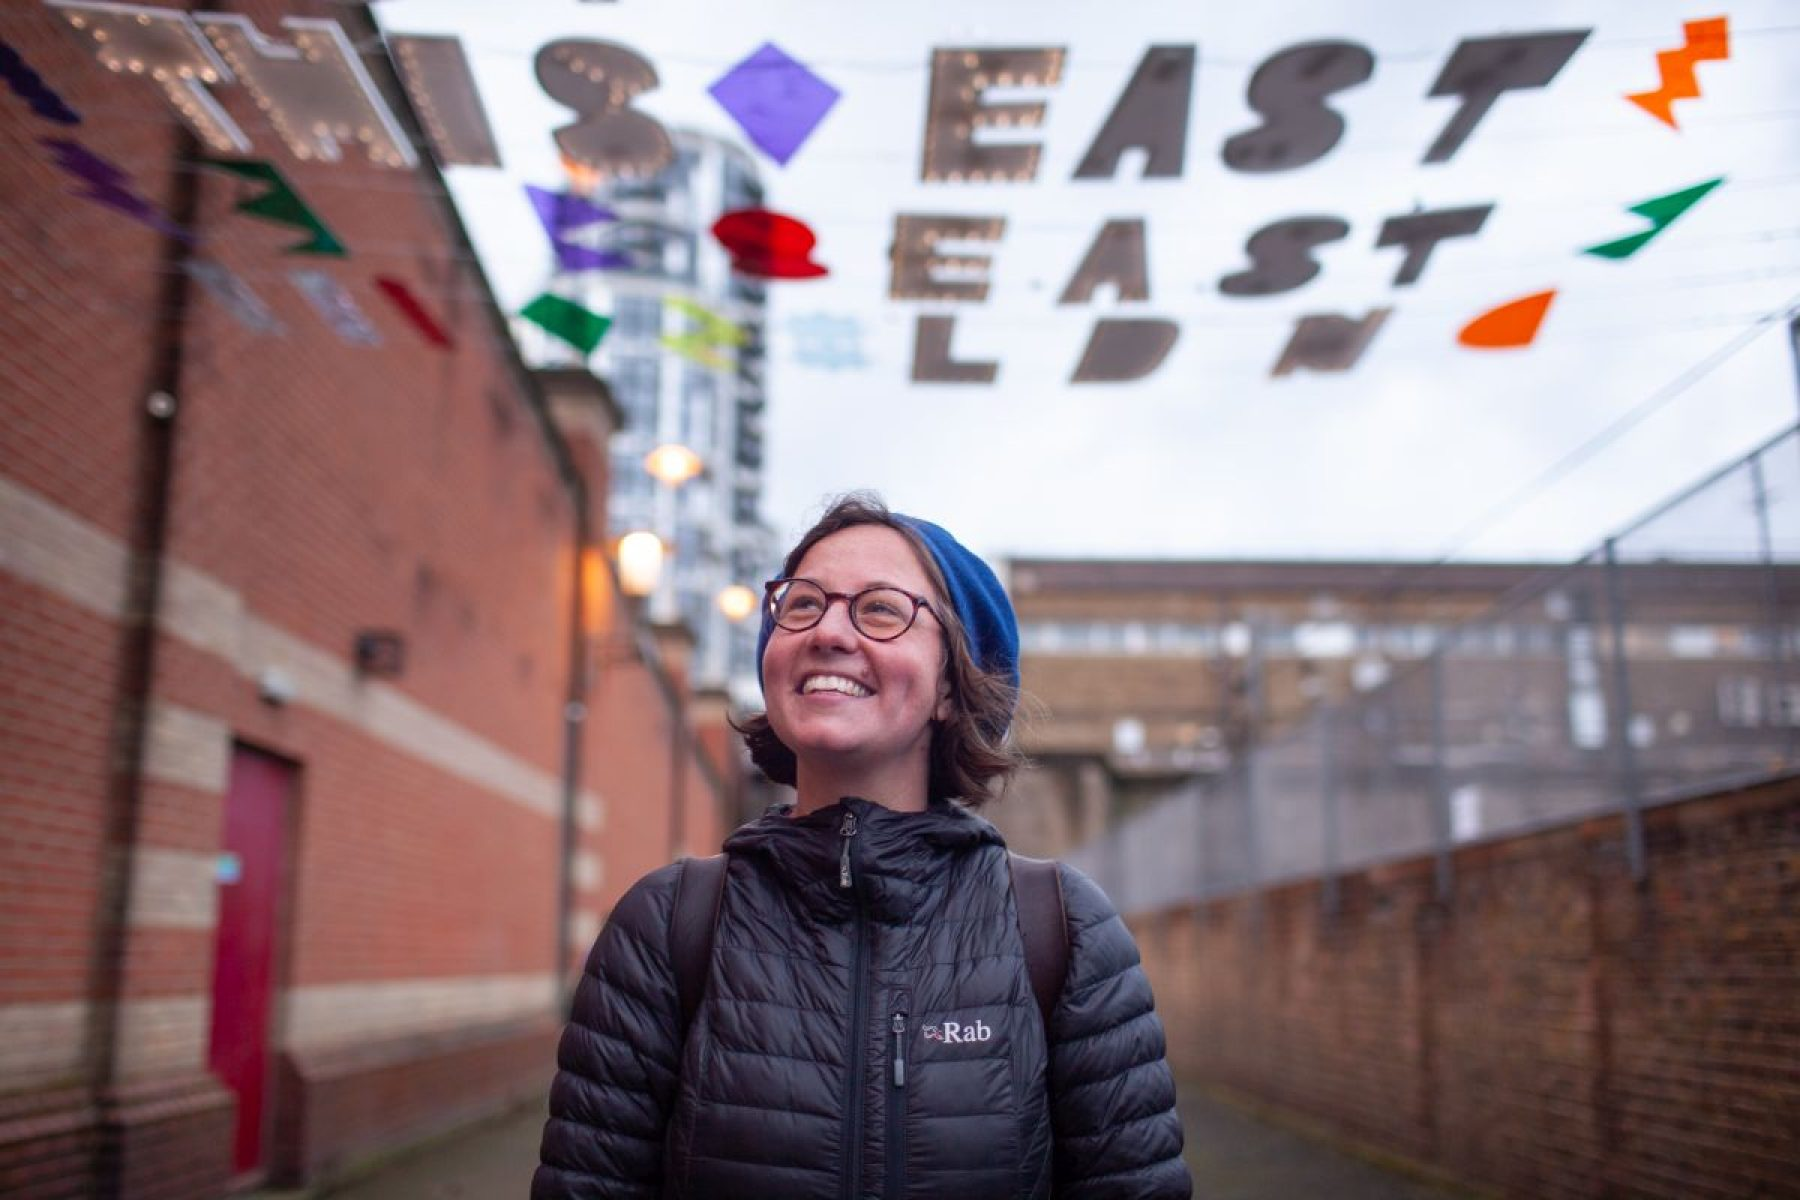 Image for 'The street is a place to connect': the social enterprise that reimagines public spaces